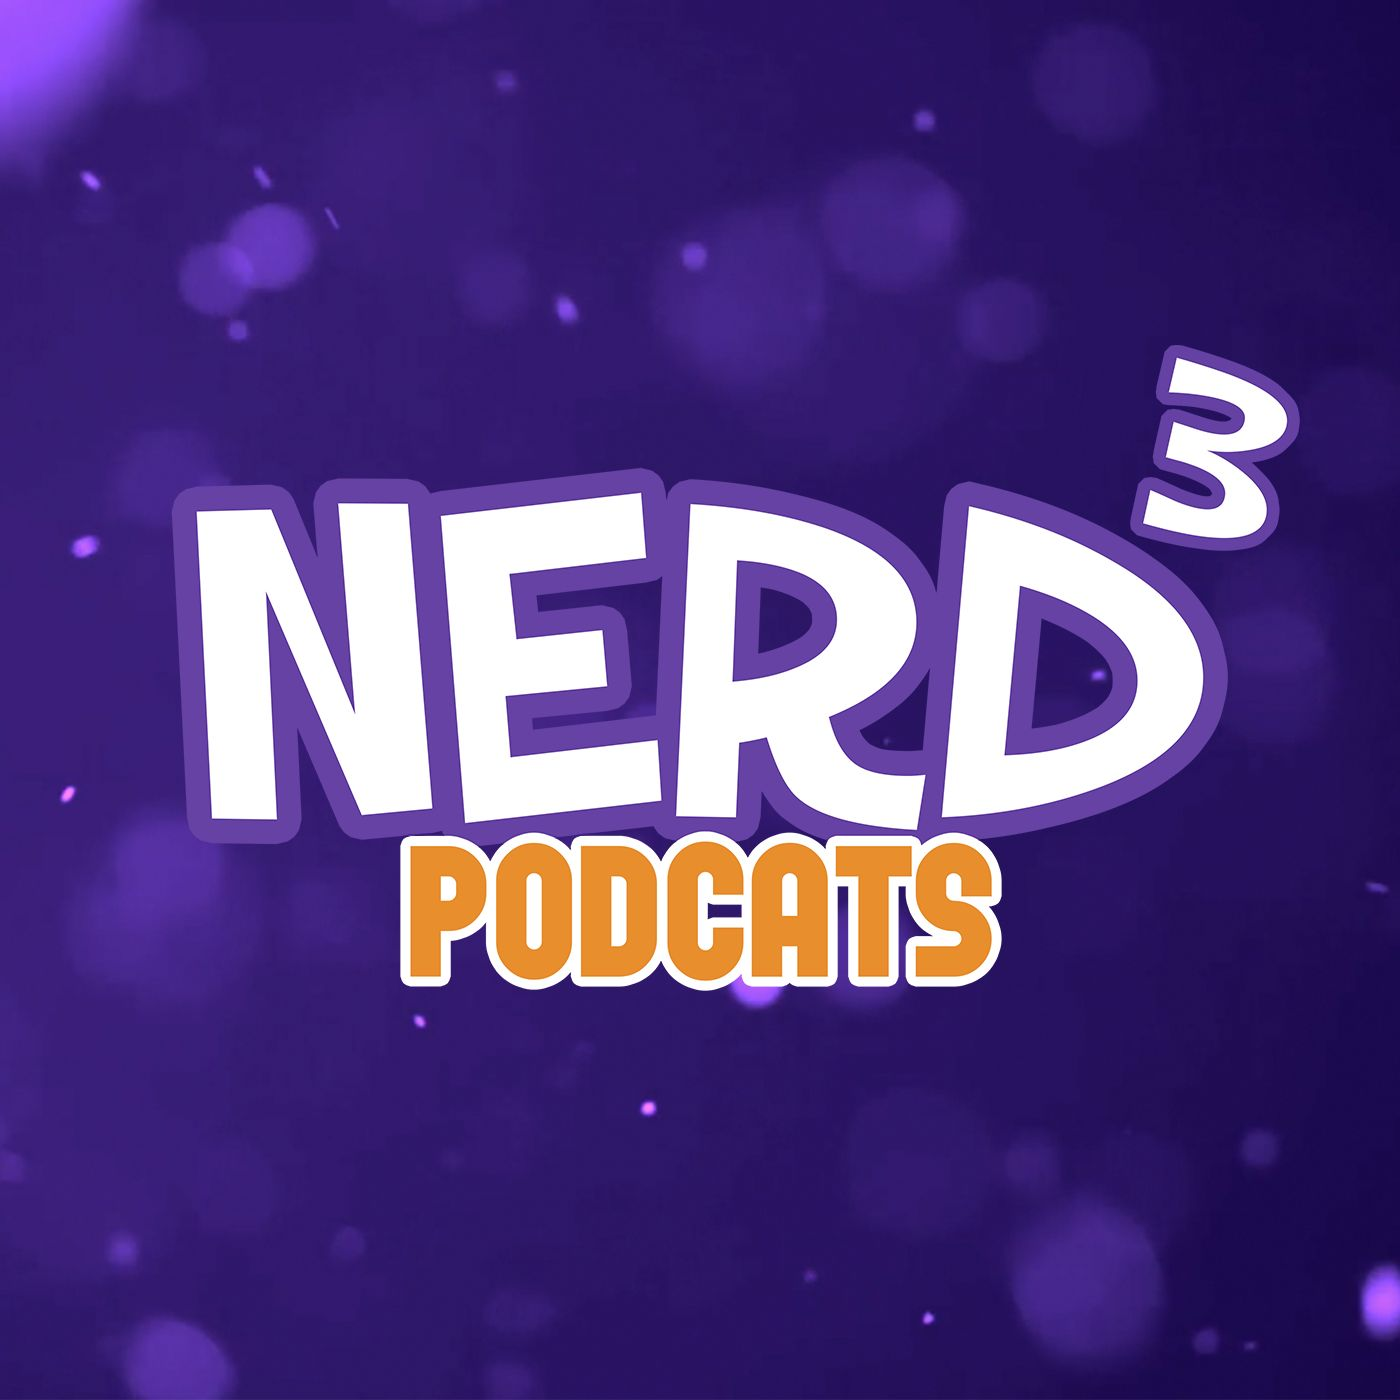 The Nerd³ Podcats